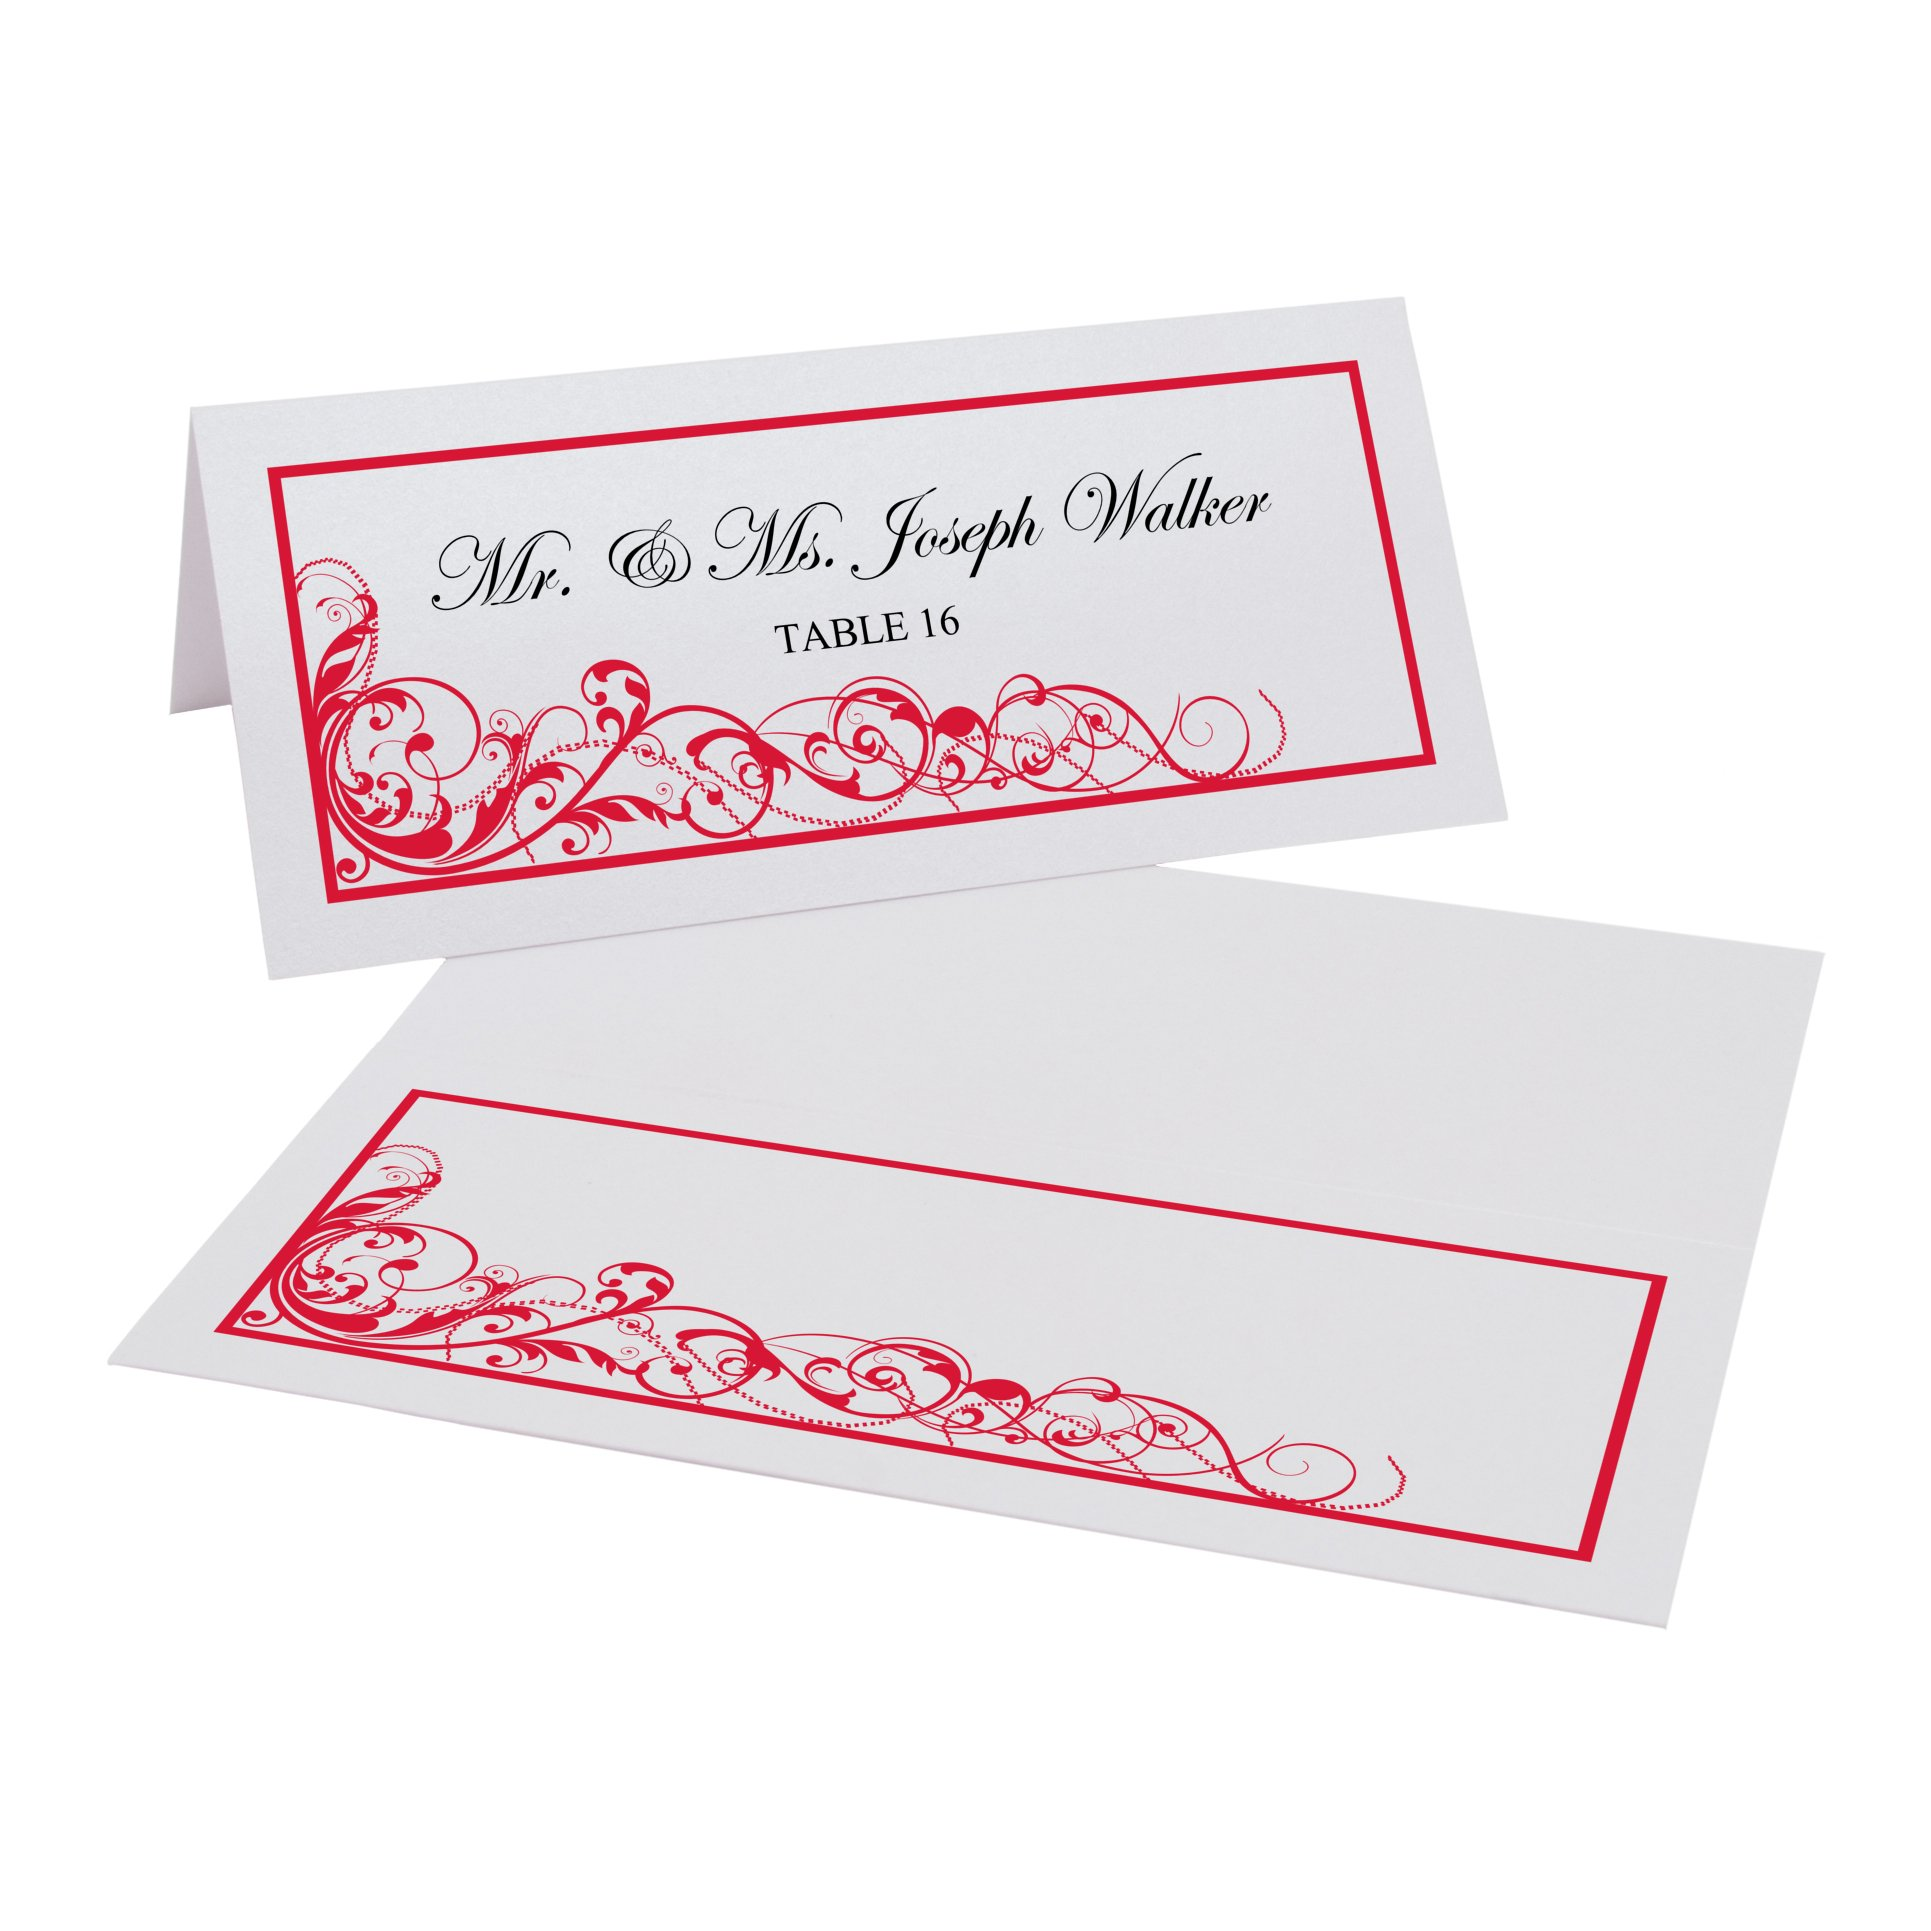 Scribble Vintage Swirl Easy Print Place Cards, Pearl White, Ruby Red, Set of 450 (113 Sheets) by Documents and Designs